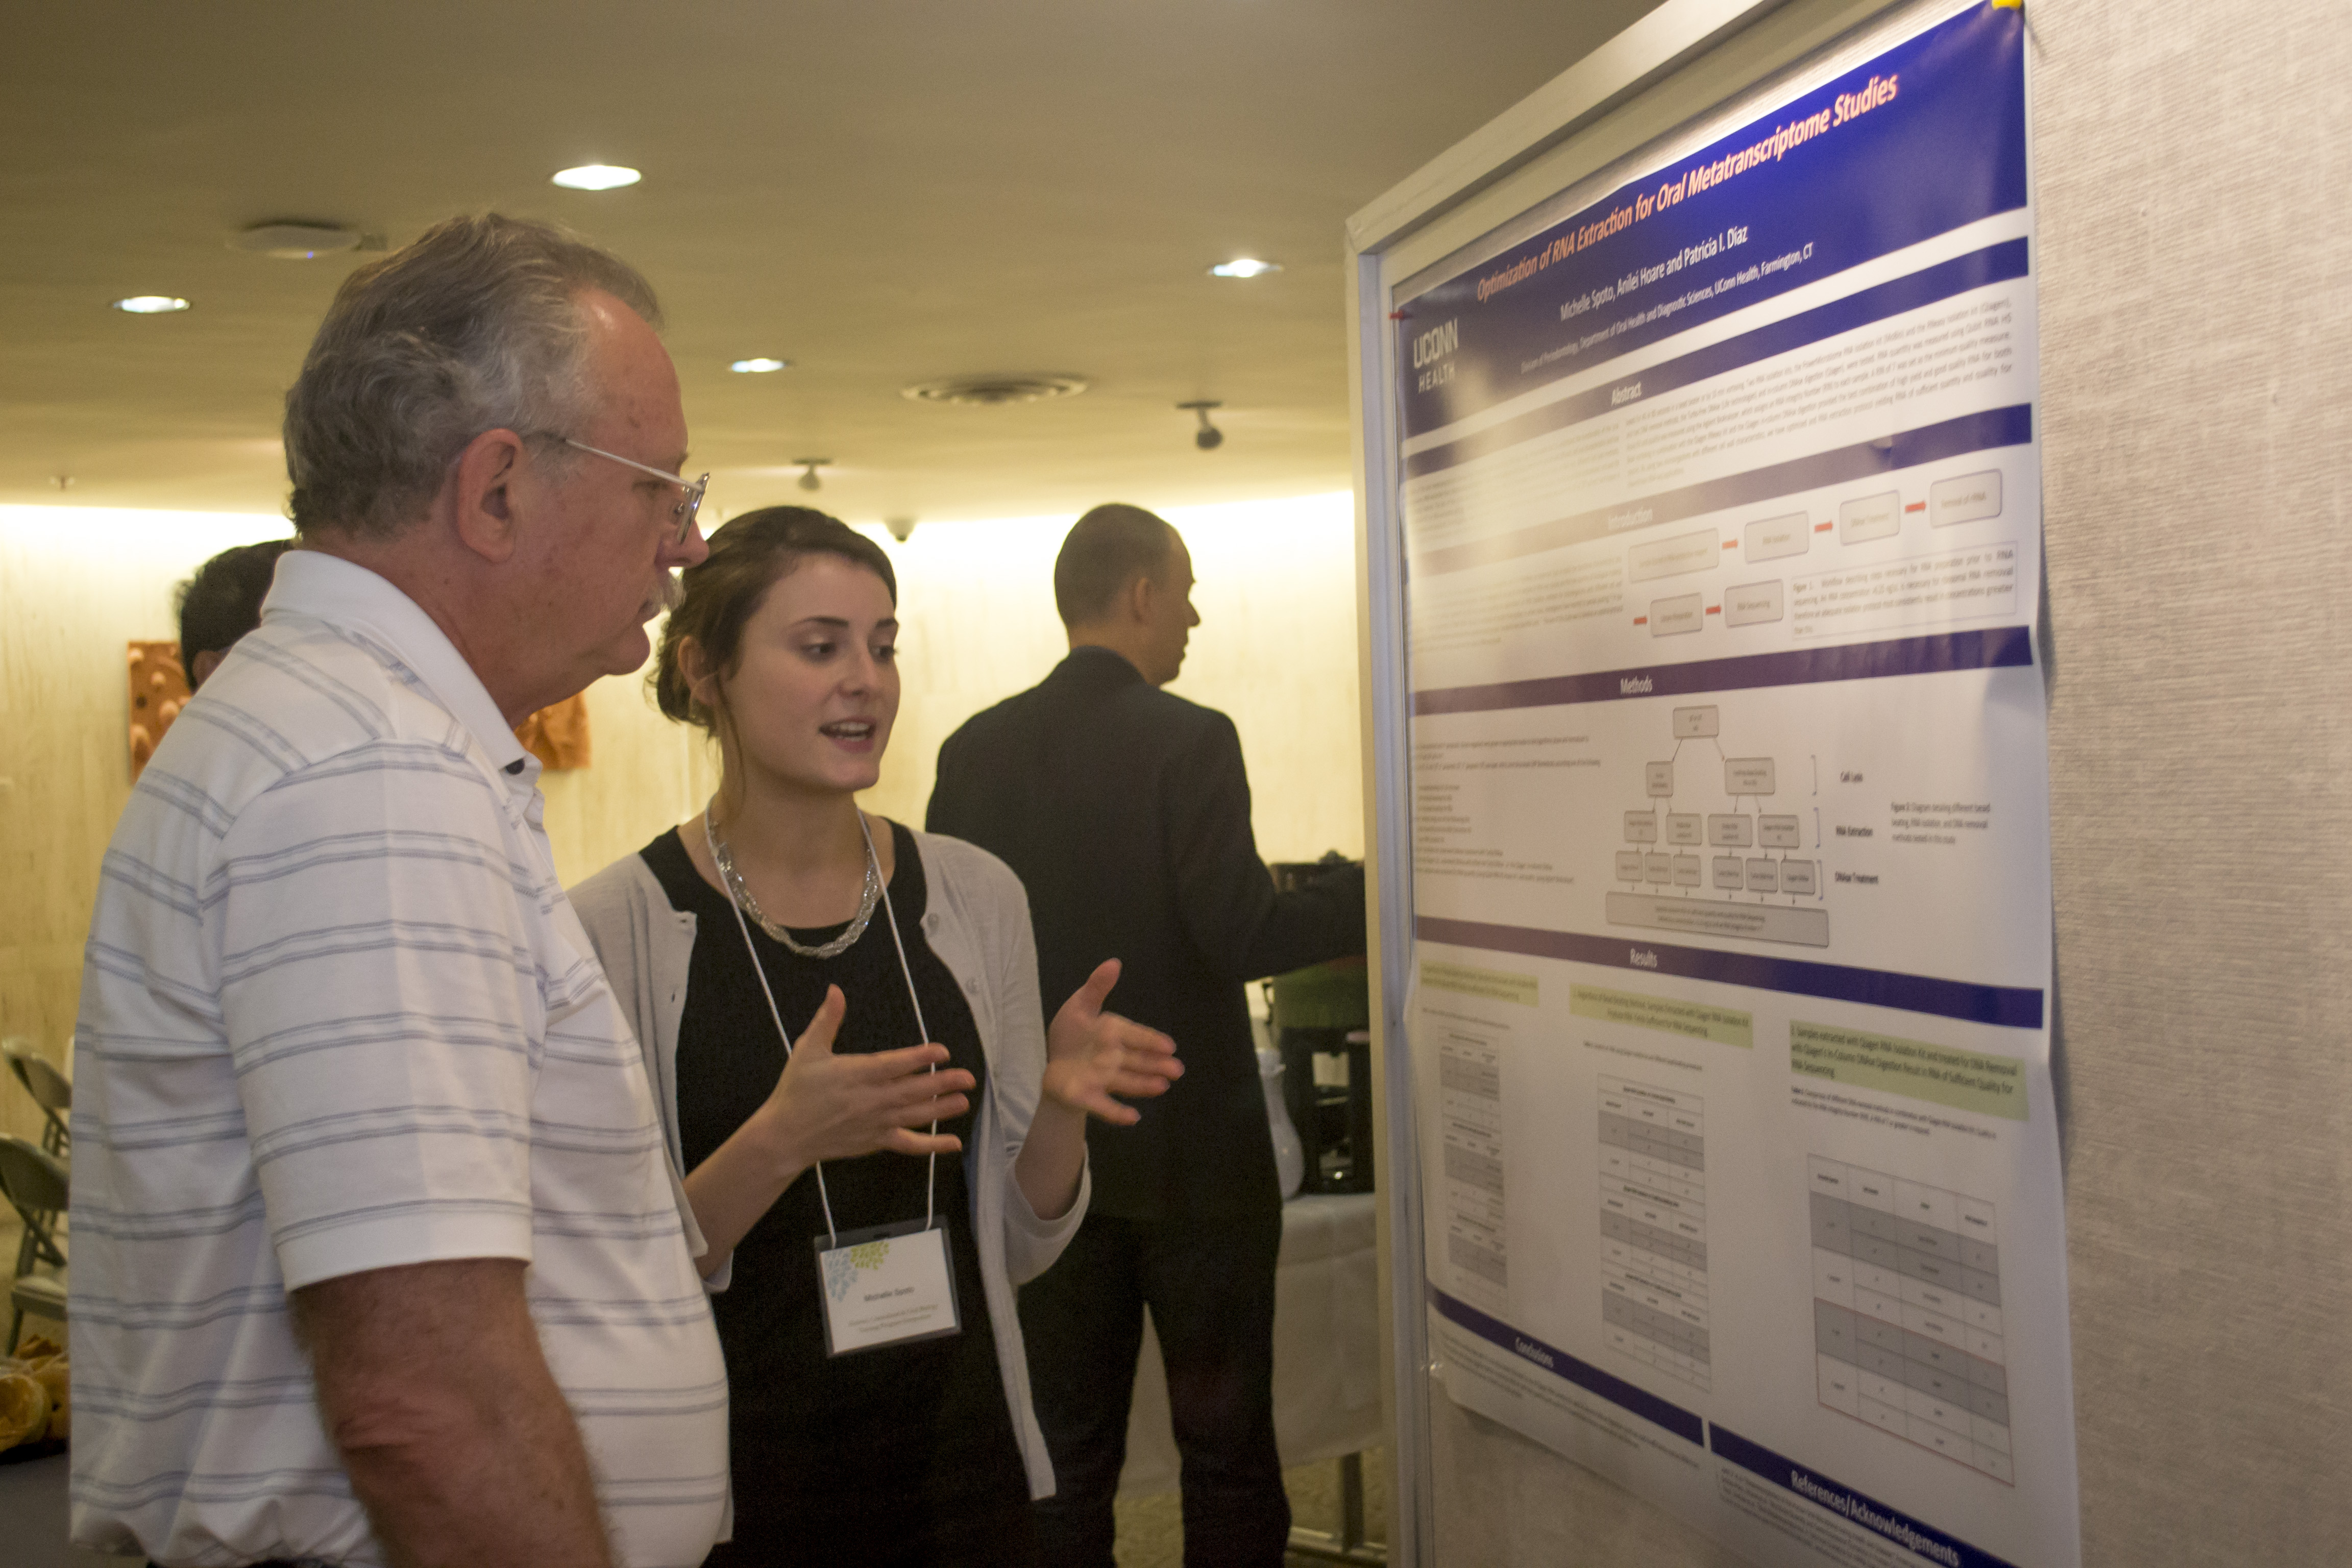 PhD student Michelle Spoto explaining her research poster to reconstructive sciences researcher Alex Lichtler during the Skeletal, Craniofacial and Oral Biology annual symposium Monday at UConn Health. (Photo by Tina Encarnacion)